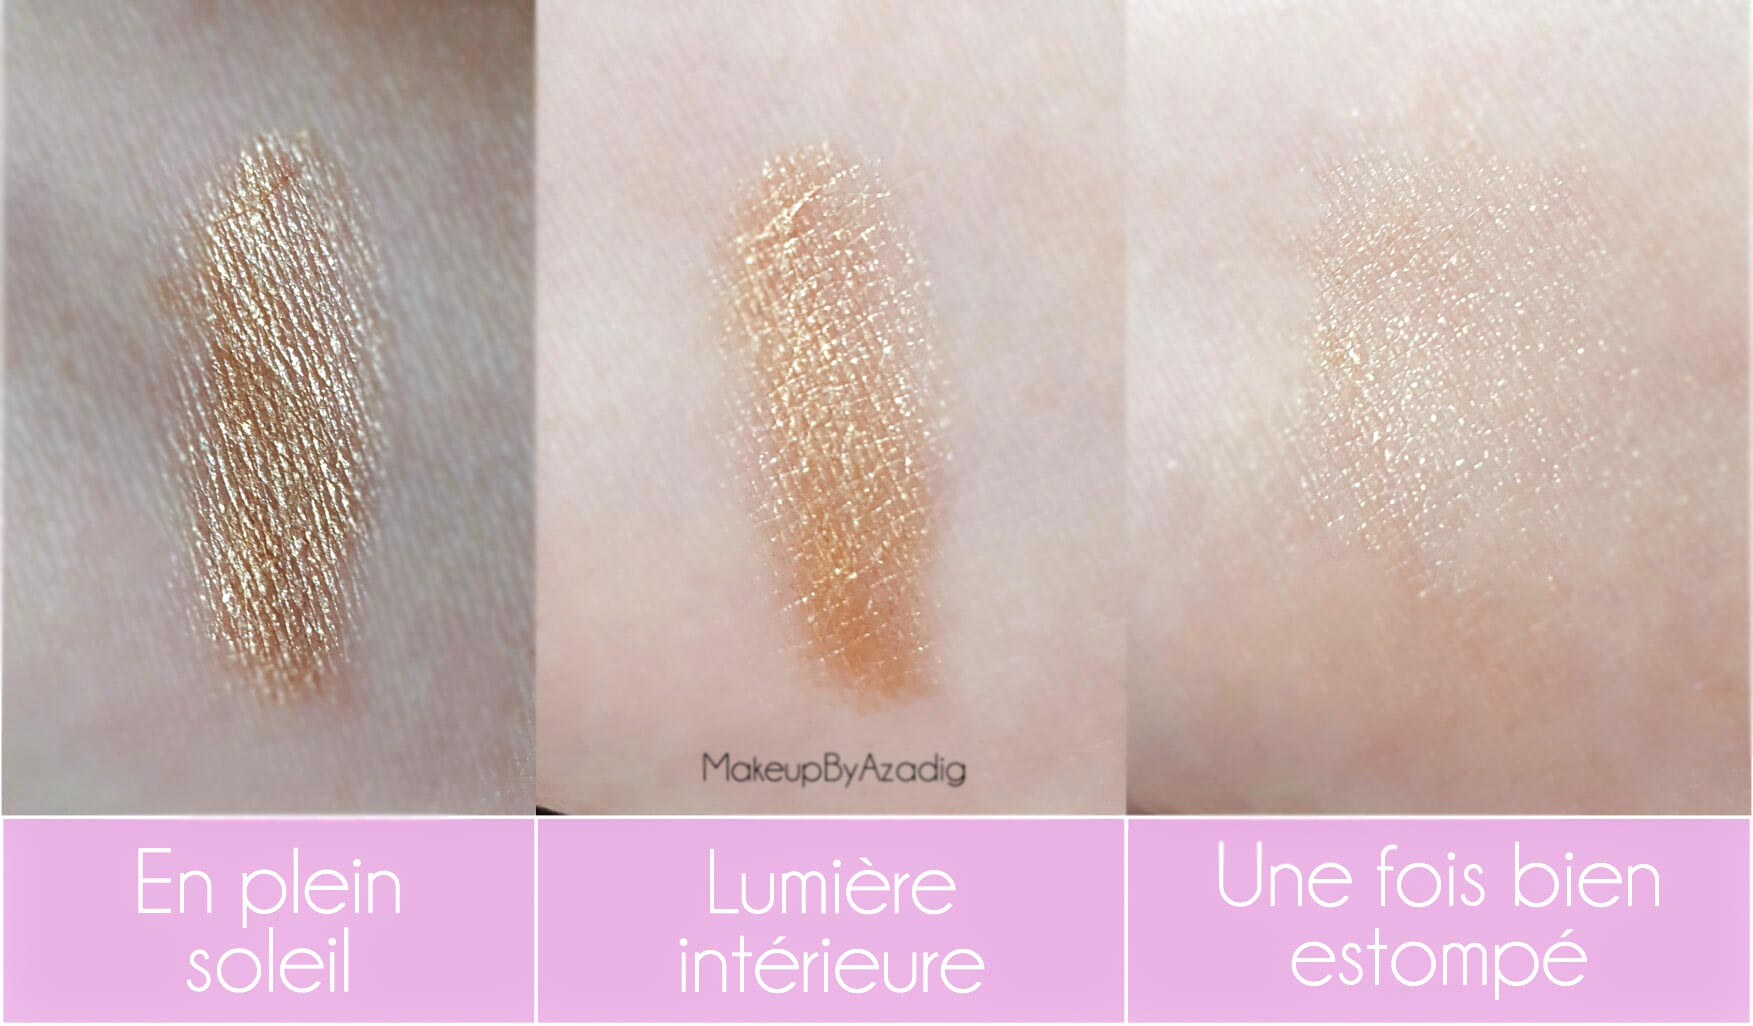 highlighter-sleek-makeup-dore-strobing-souffle-smoky-quartz-sephora-swatches-makeupbyazadig-avis-holographique